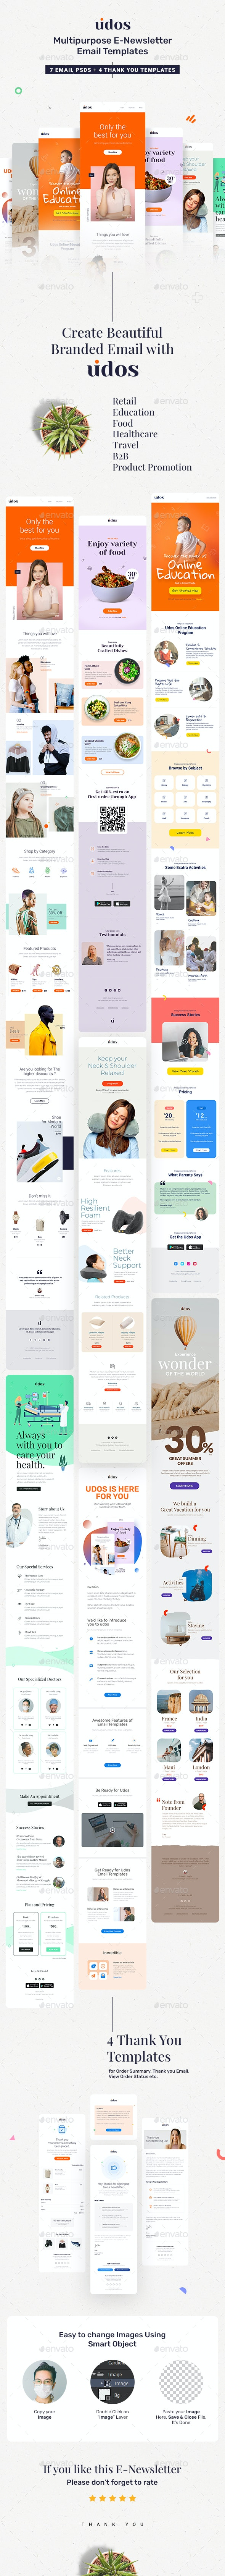 Udos - Multipurpose E-Newsletter Email Templates - E-newsletters Web Elements